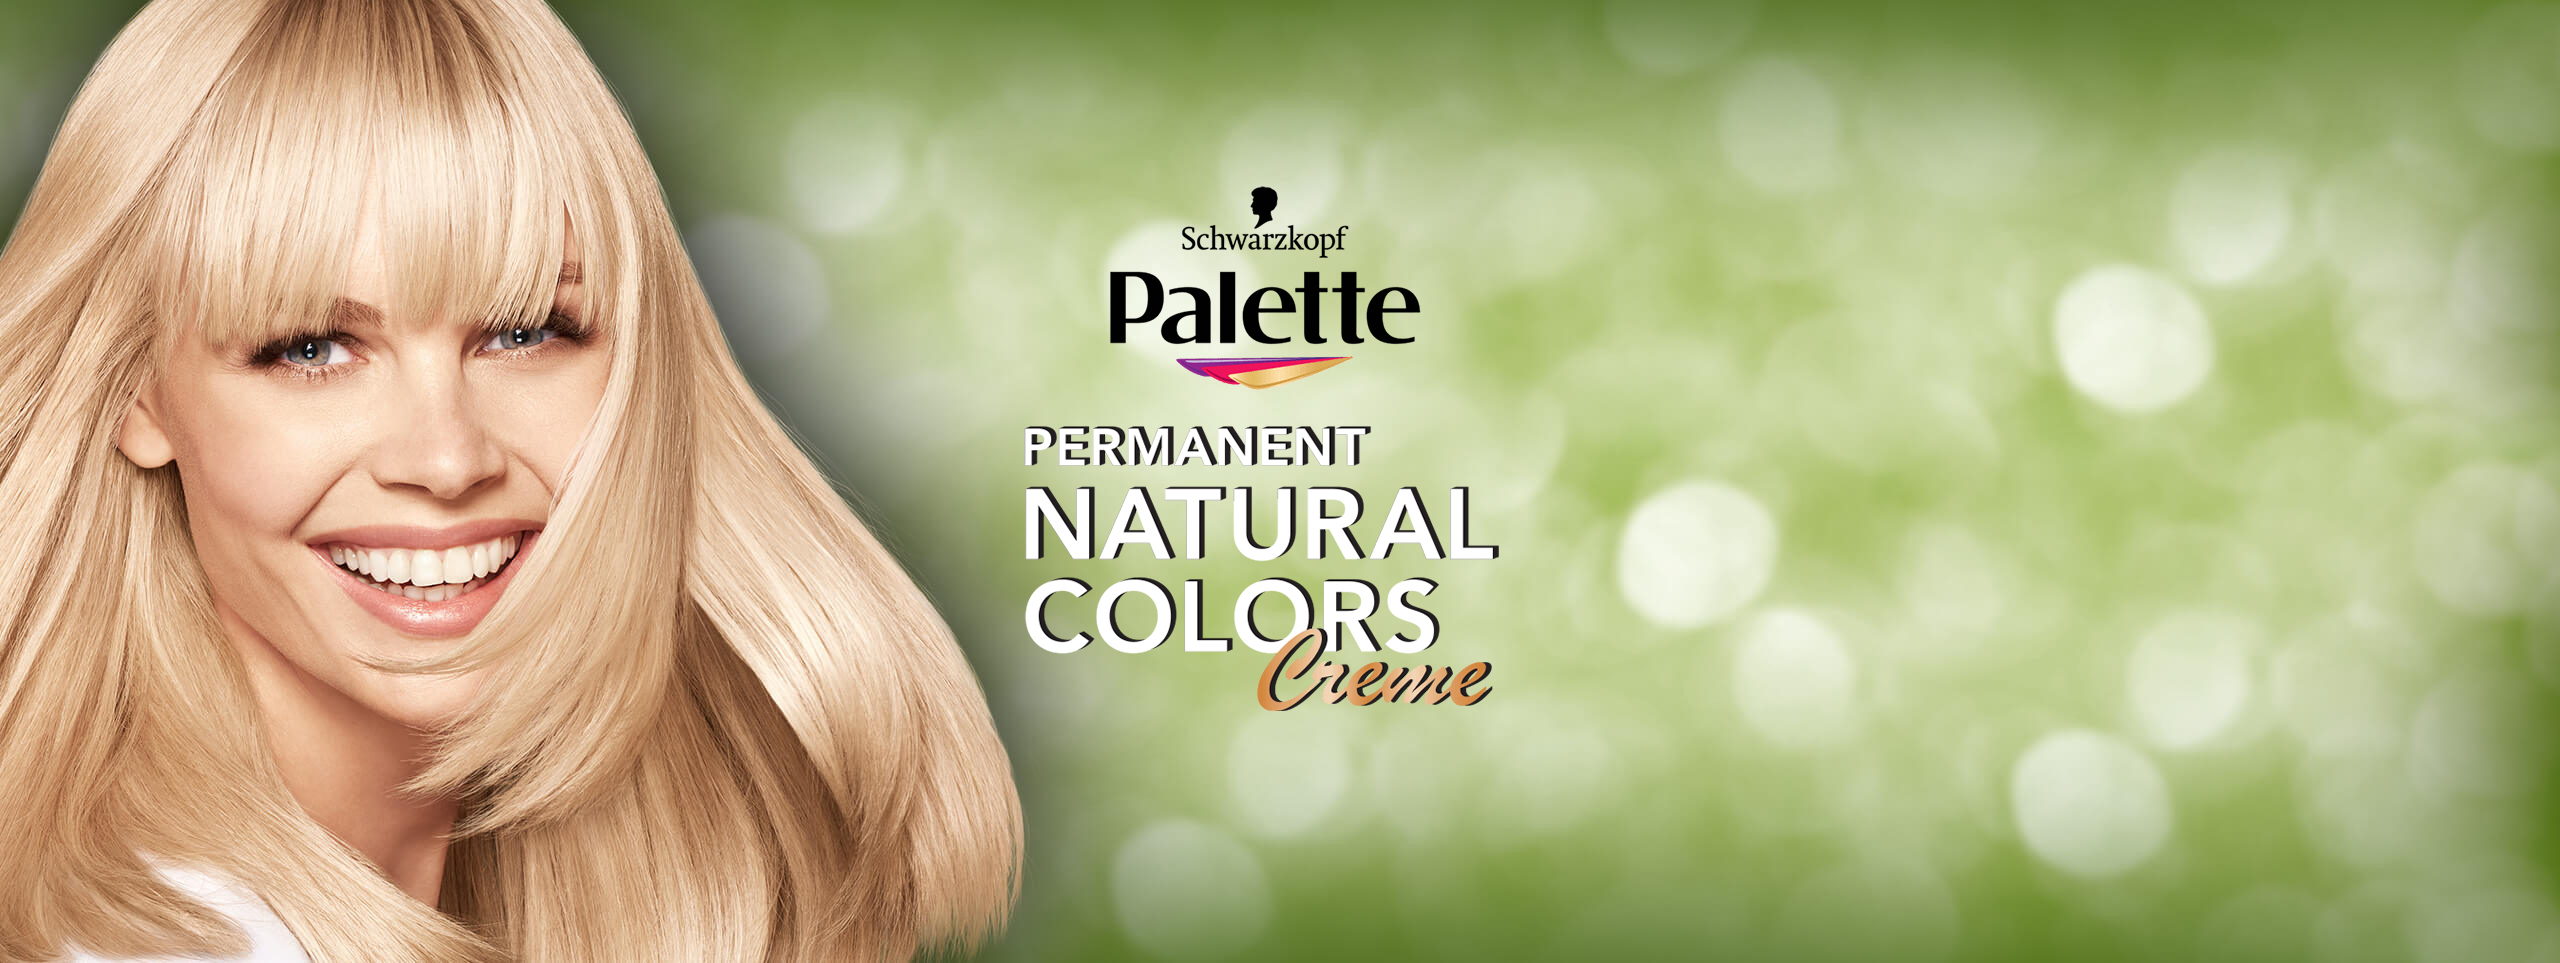 palette_permanent_natural_colors_home_2560x963